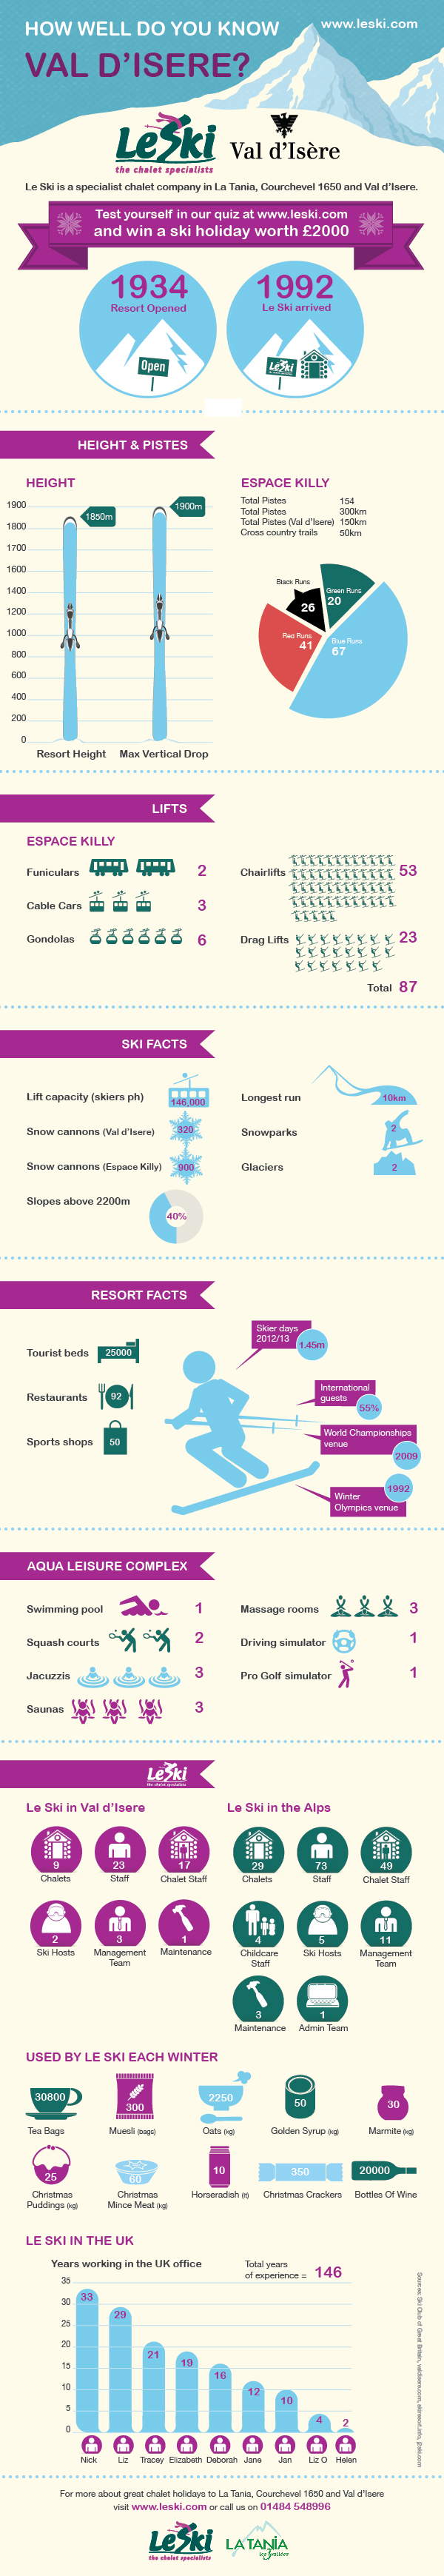 Val d'Isere infographic